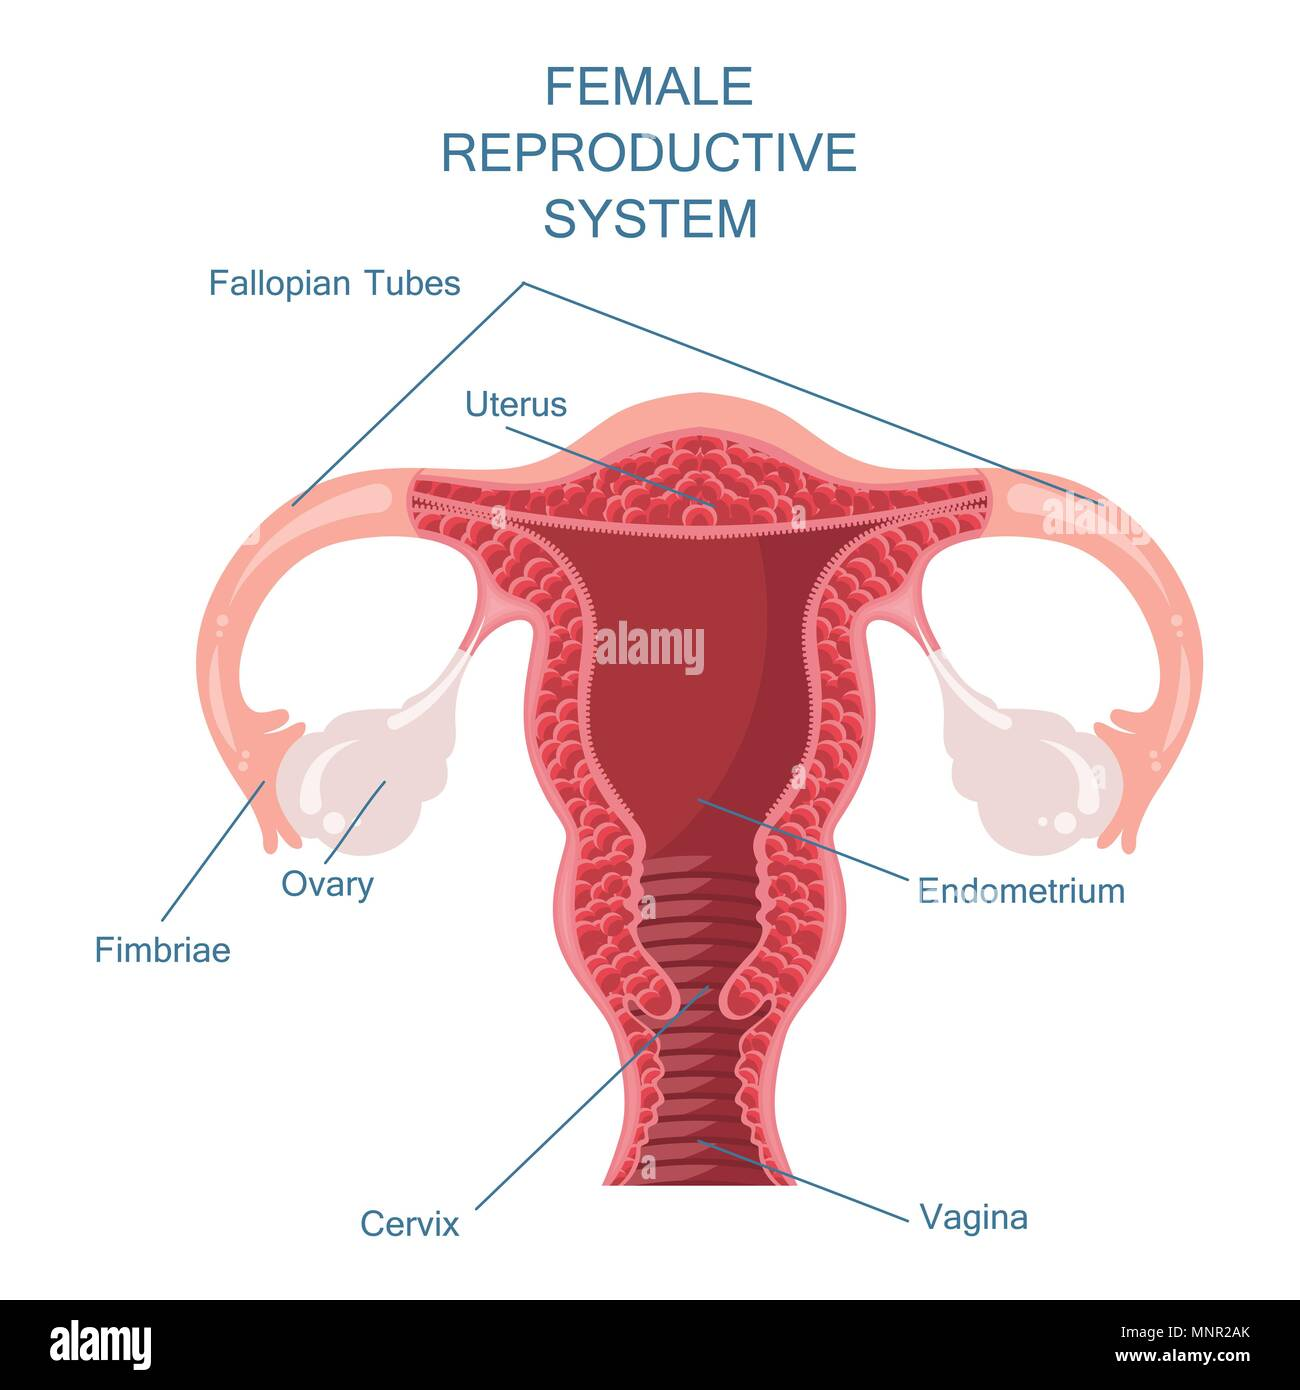 Women's Reproductive System Diagram